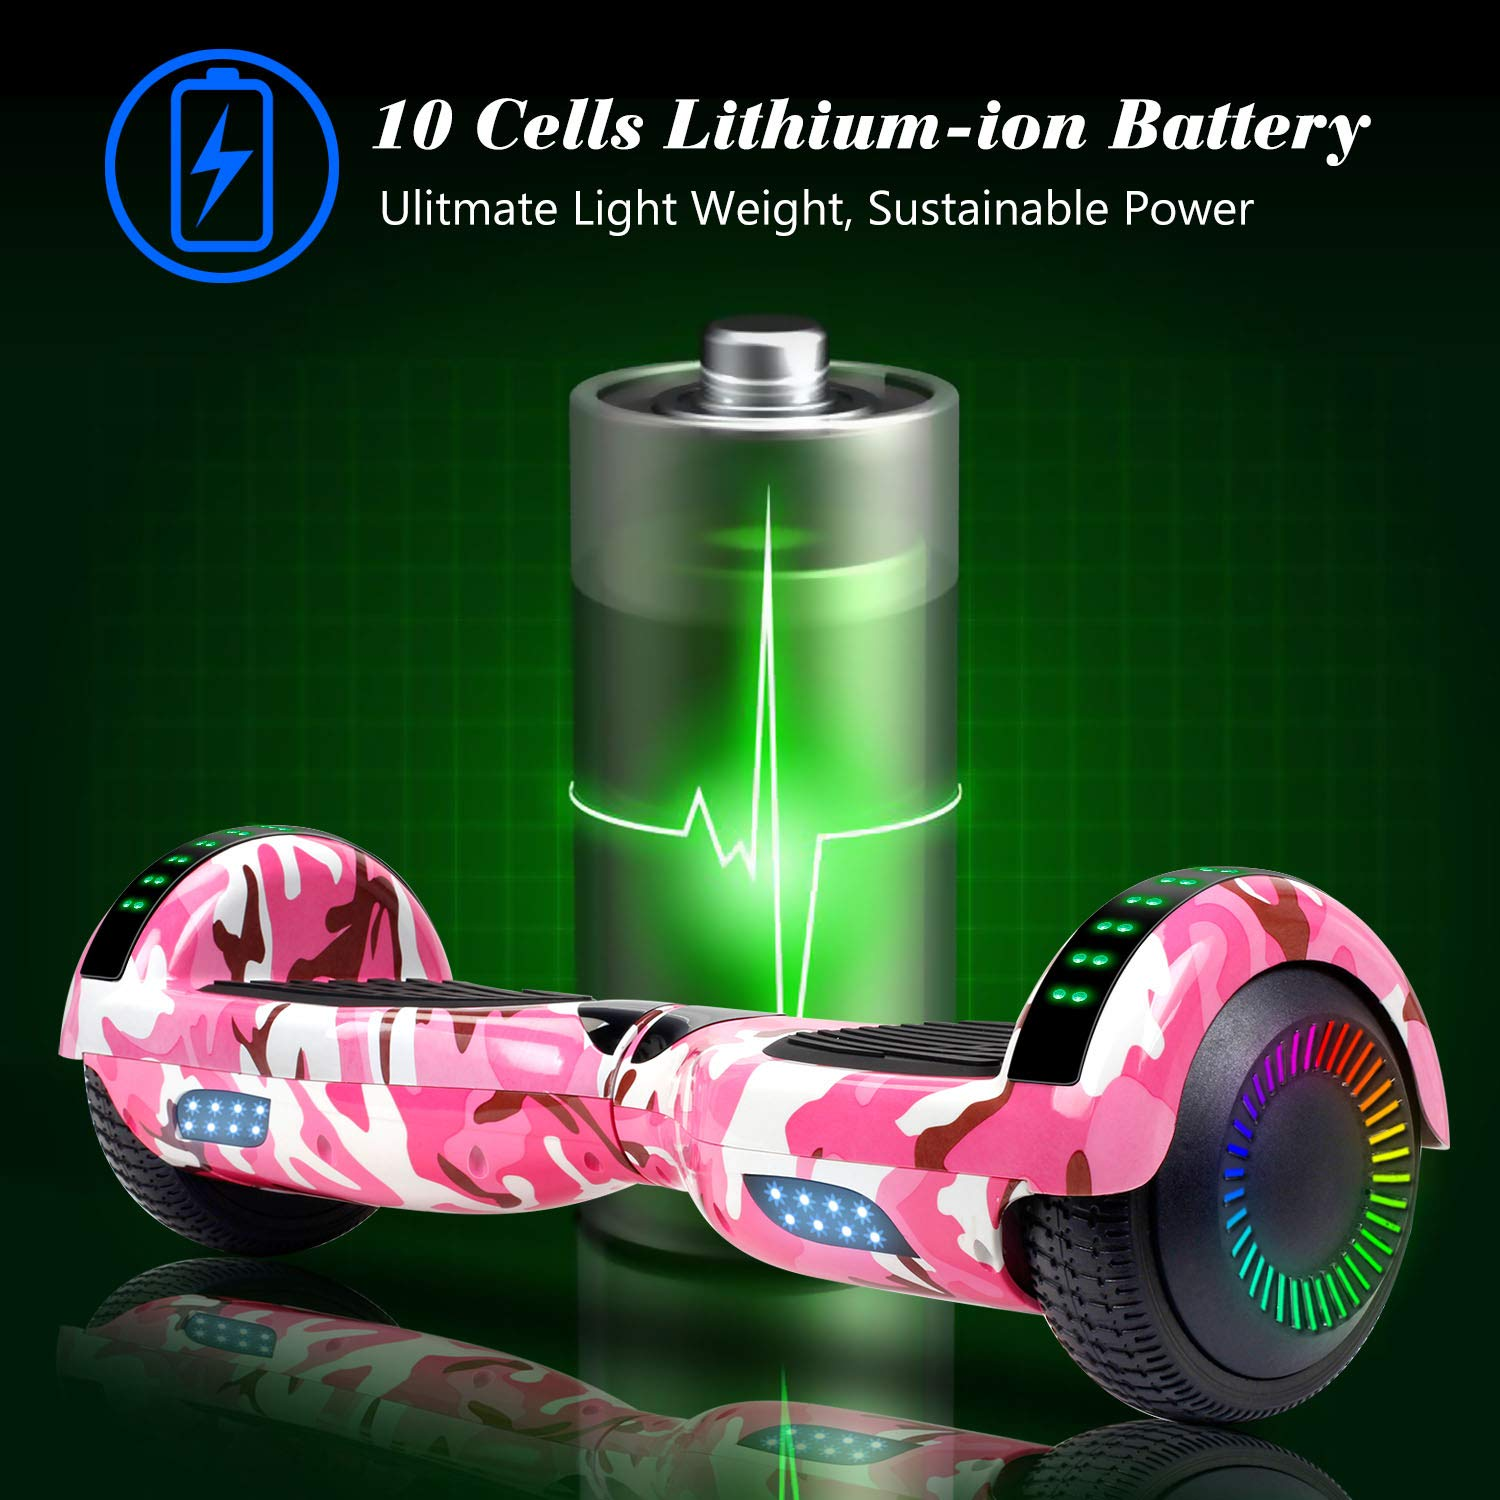 SISIGAD Hoverboard Self Balancing Scooter 6.5'' Two-Wheel Self Balancing Hoverboard with Bluetooth Speaker and LED Lights Electric Scooter for Adult Kids Gift UL 2272 Certified Fun Edition - Pink Camo by SISIGAD (Image #3)